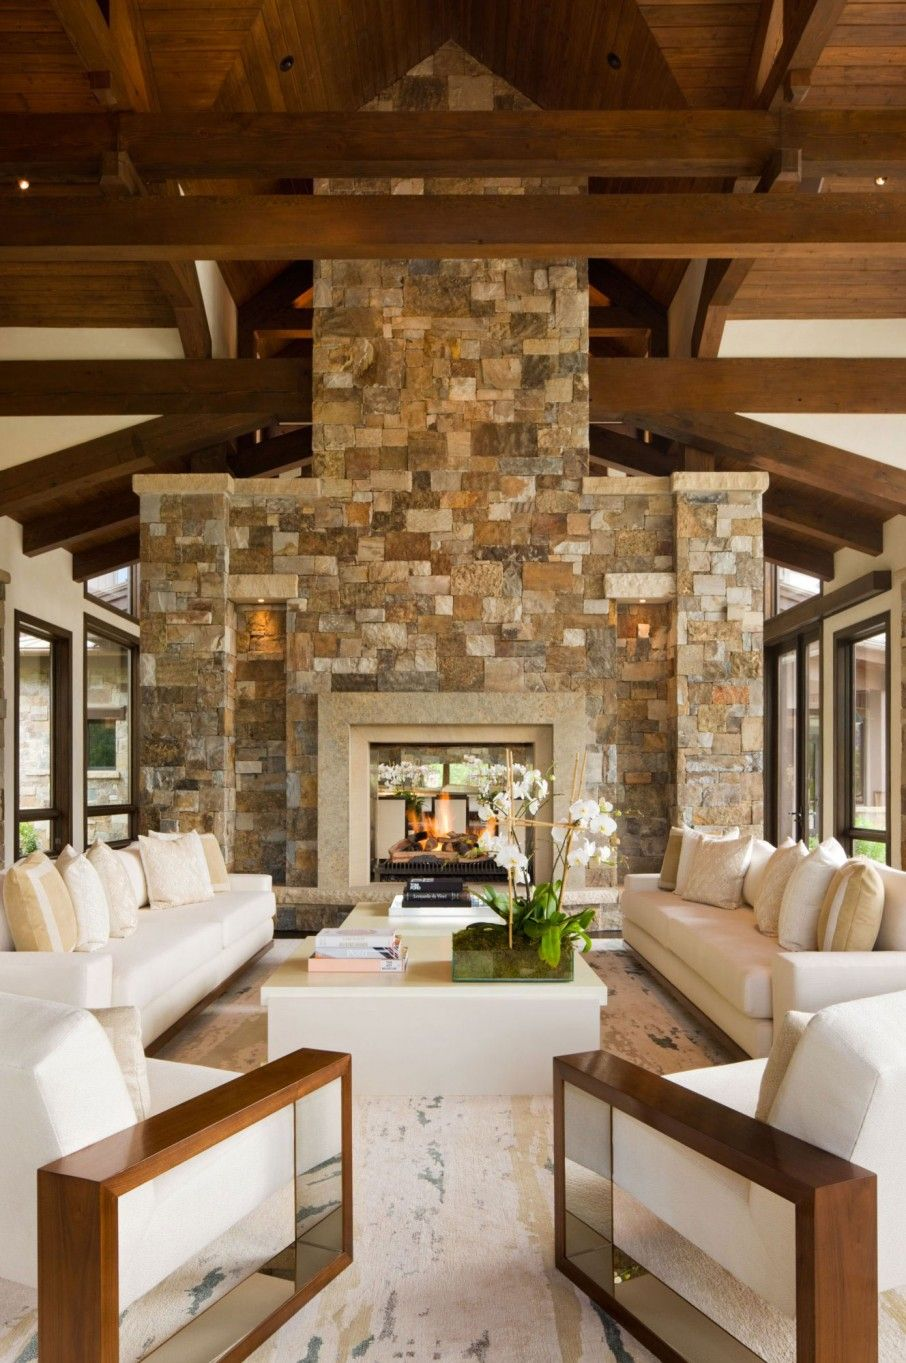 Elegant Mountain Contemporary Home In Colorado Radiates With Warmth: Alluring Rustic Interior In Open Plan Concept: Innovative Sitting Space With Stone Wall And Some